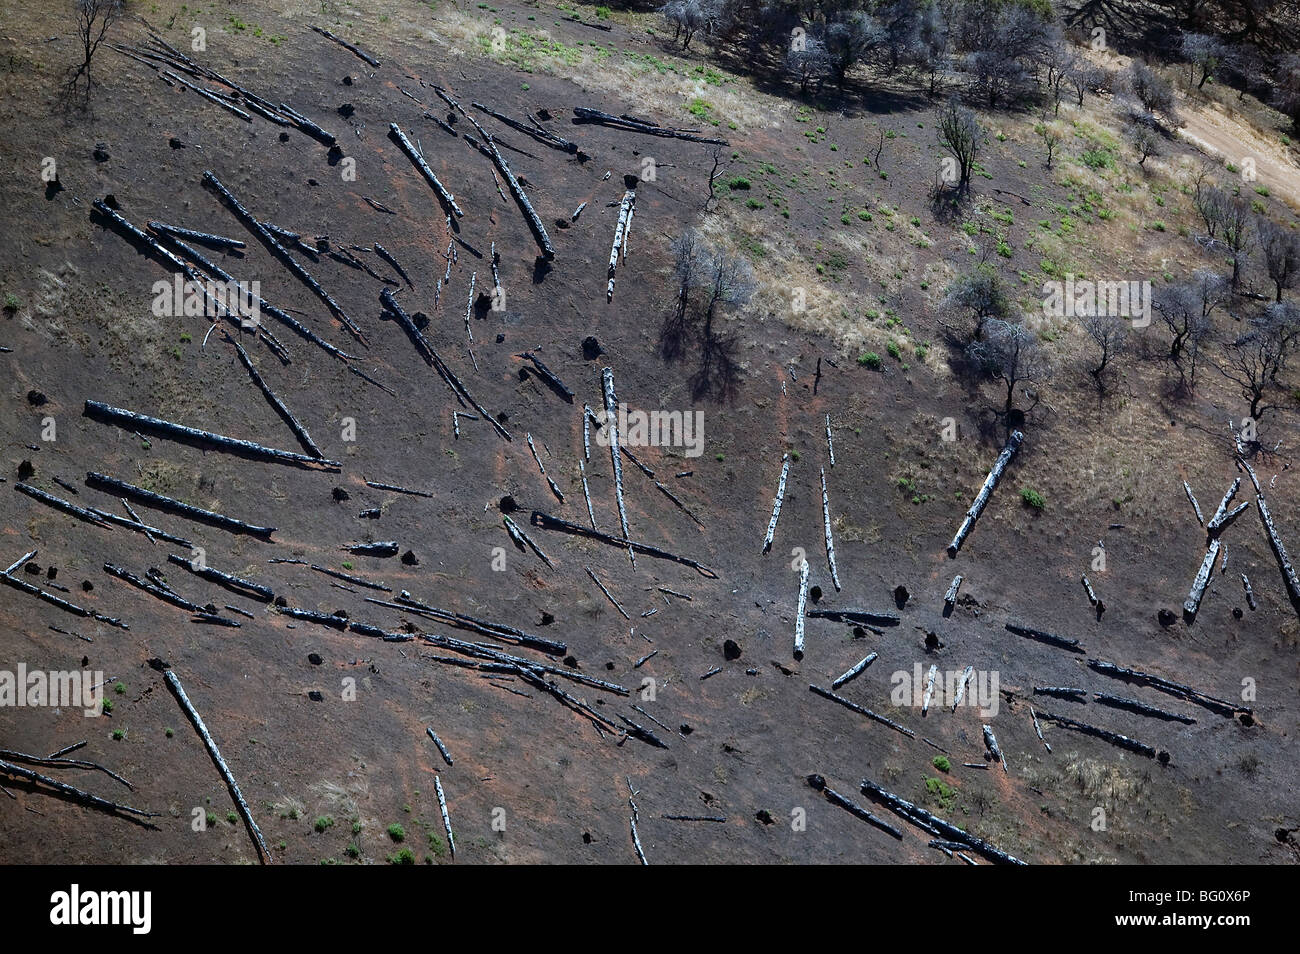 aerial view clear cutting invasive species Eucalyptus Angel Island 'San Francisco bay' - Stock Image